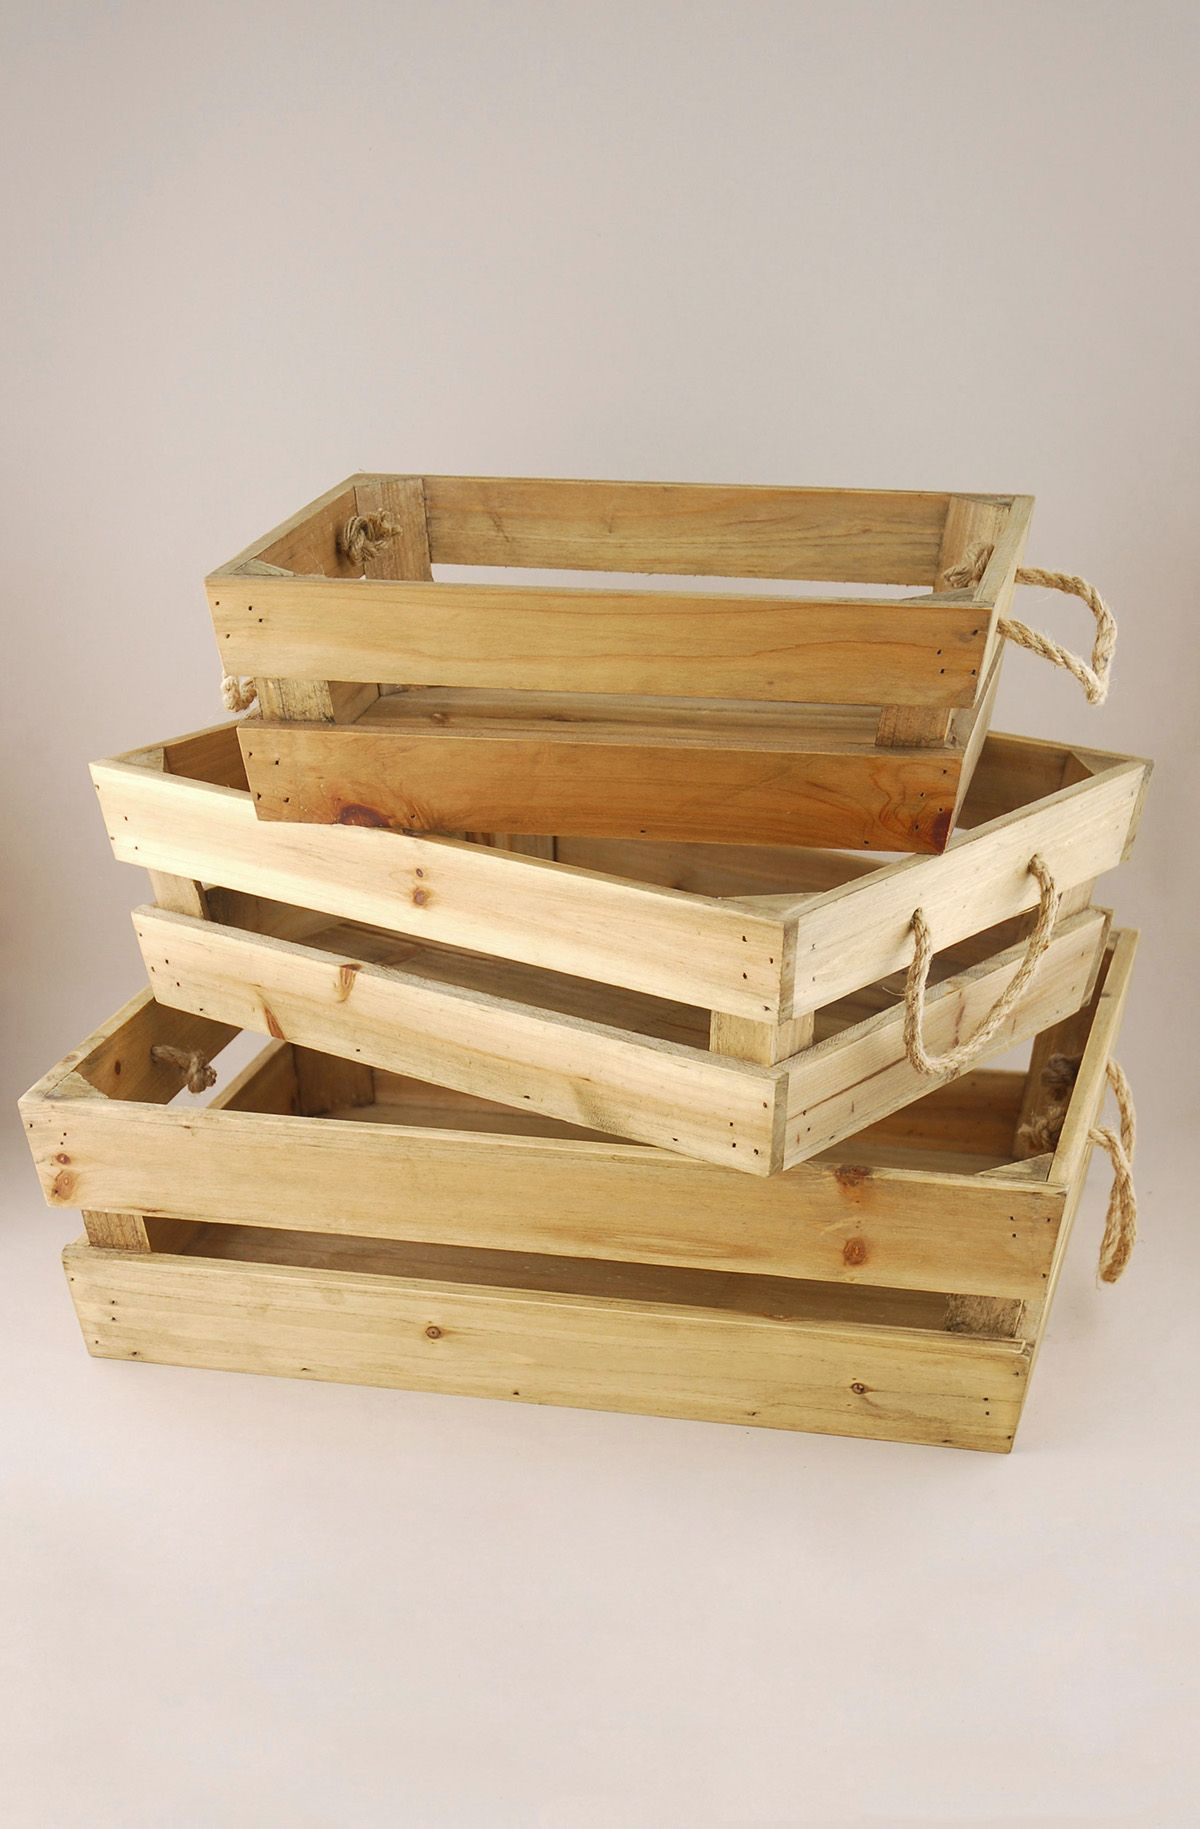 Cheap Wooden Crates Crates Bins Trays Crates Trays Wood Wood Tray